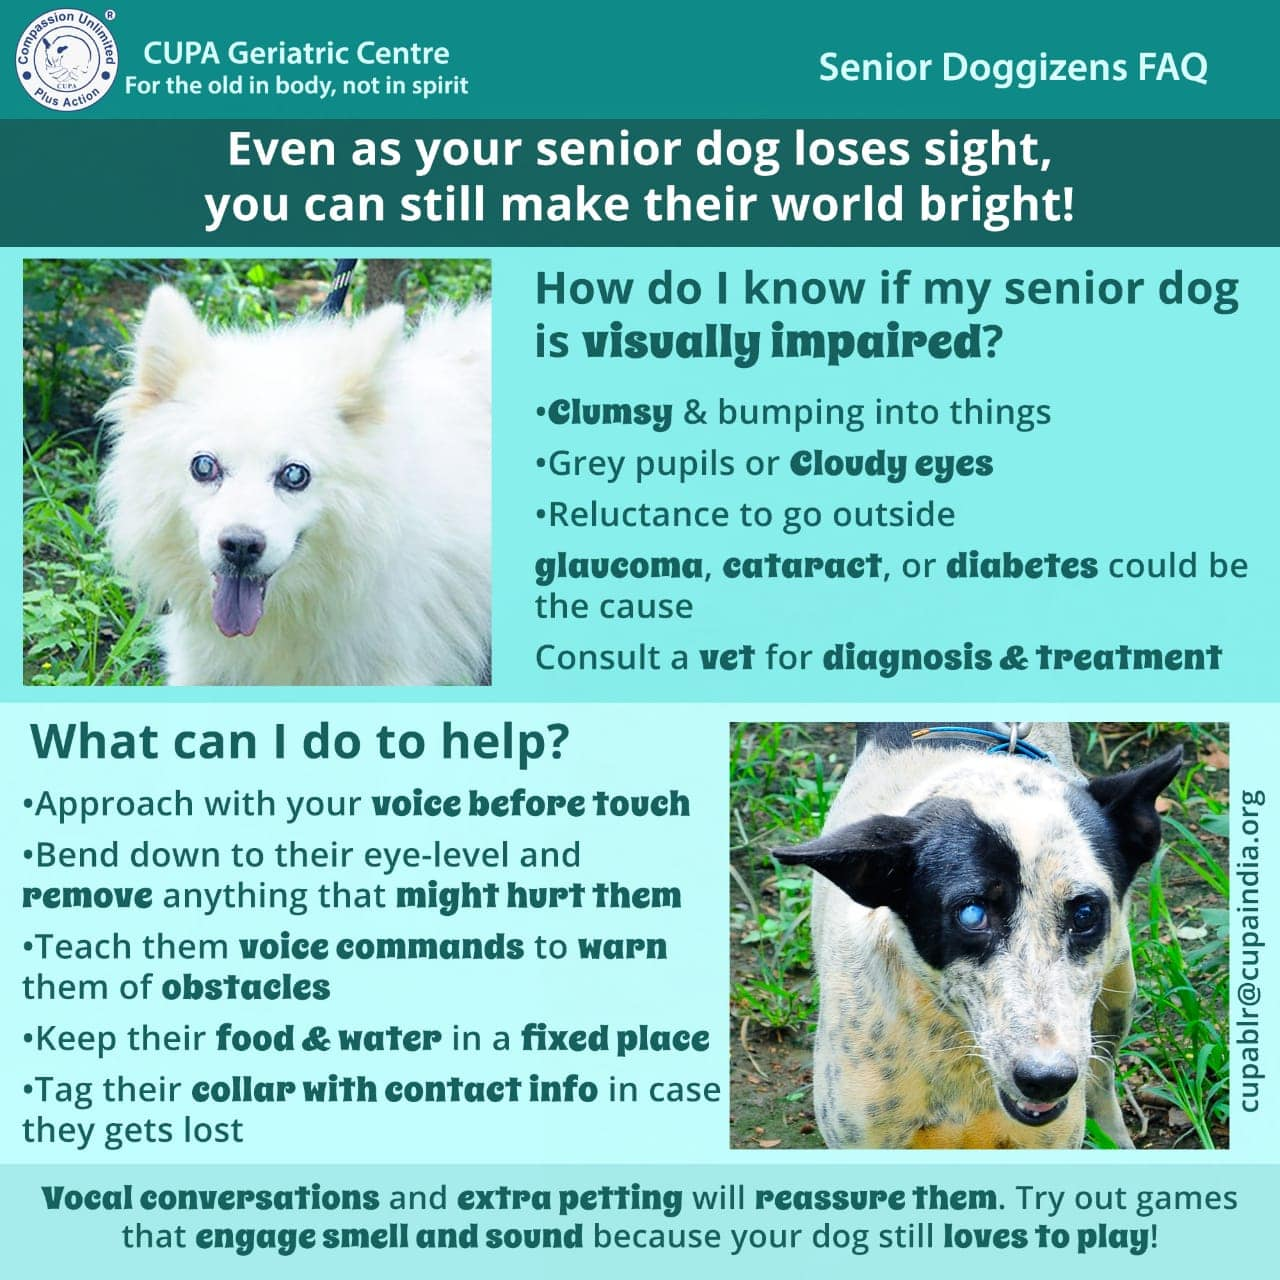 EVEN AS YOUR SENIOR DOG LOSES SIGHT, YOU CAN STILL MAKE THIER WORLD BRIGHT!